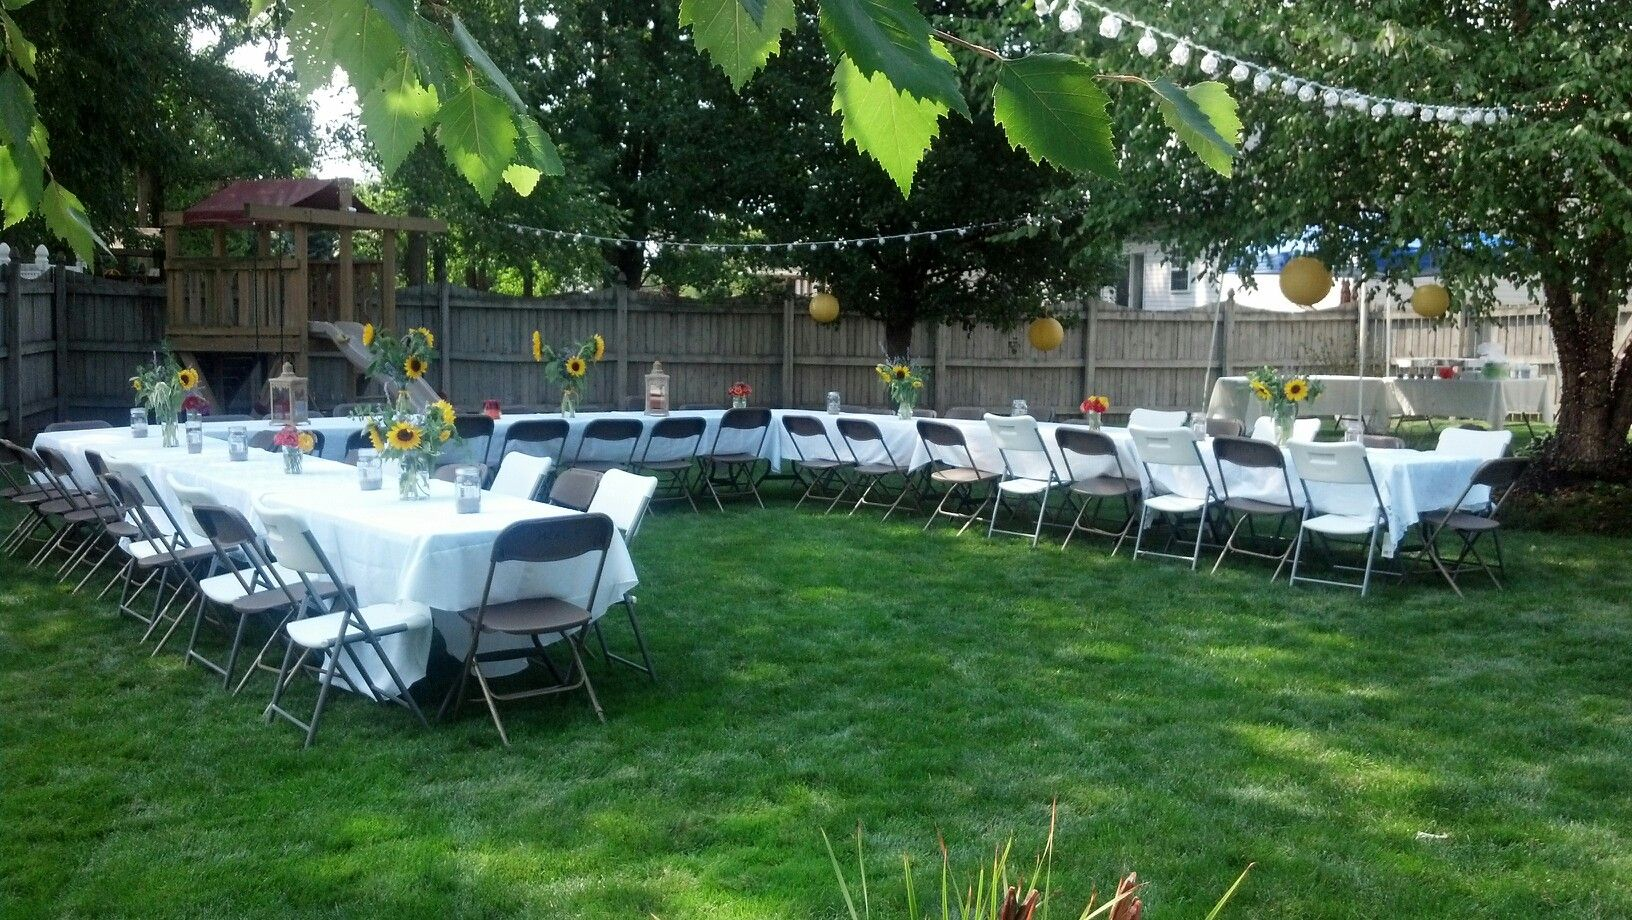 Graduation Party Ideas On A Budget